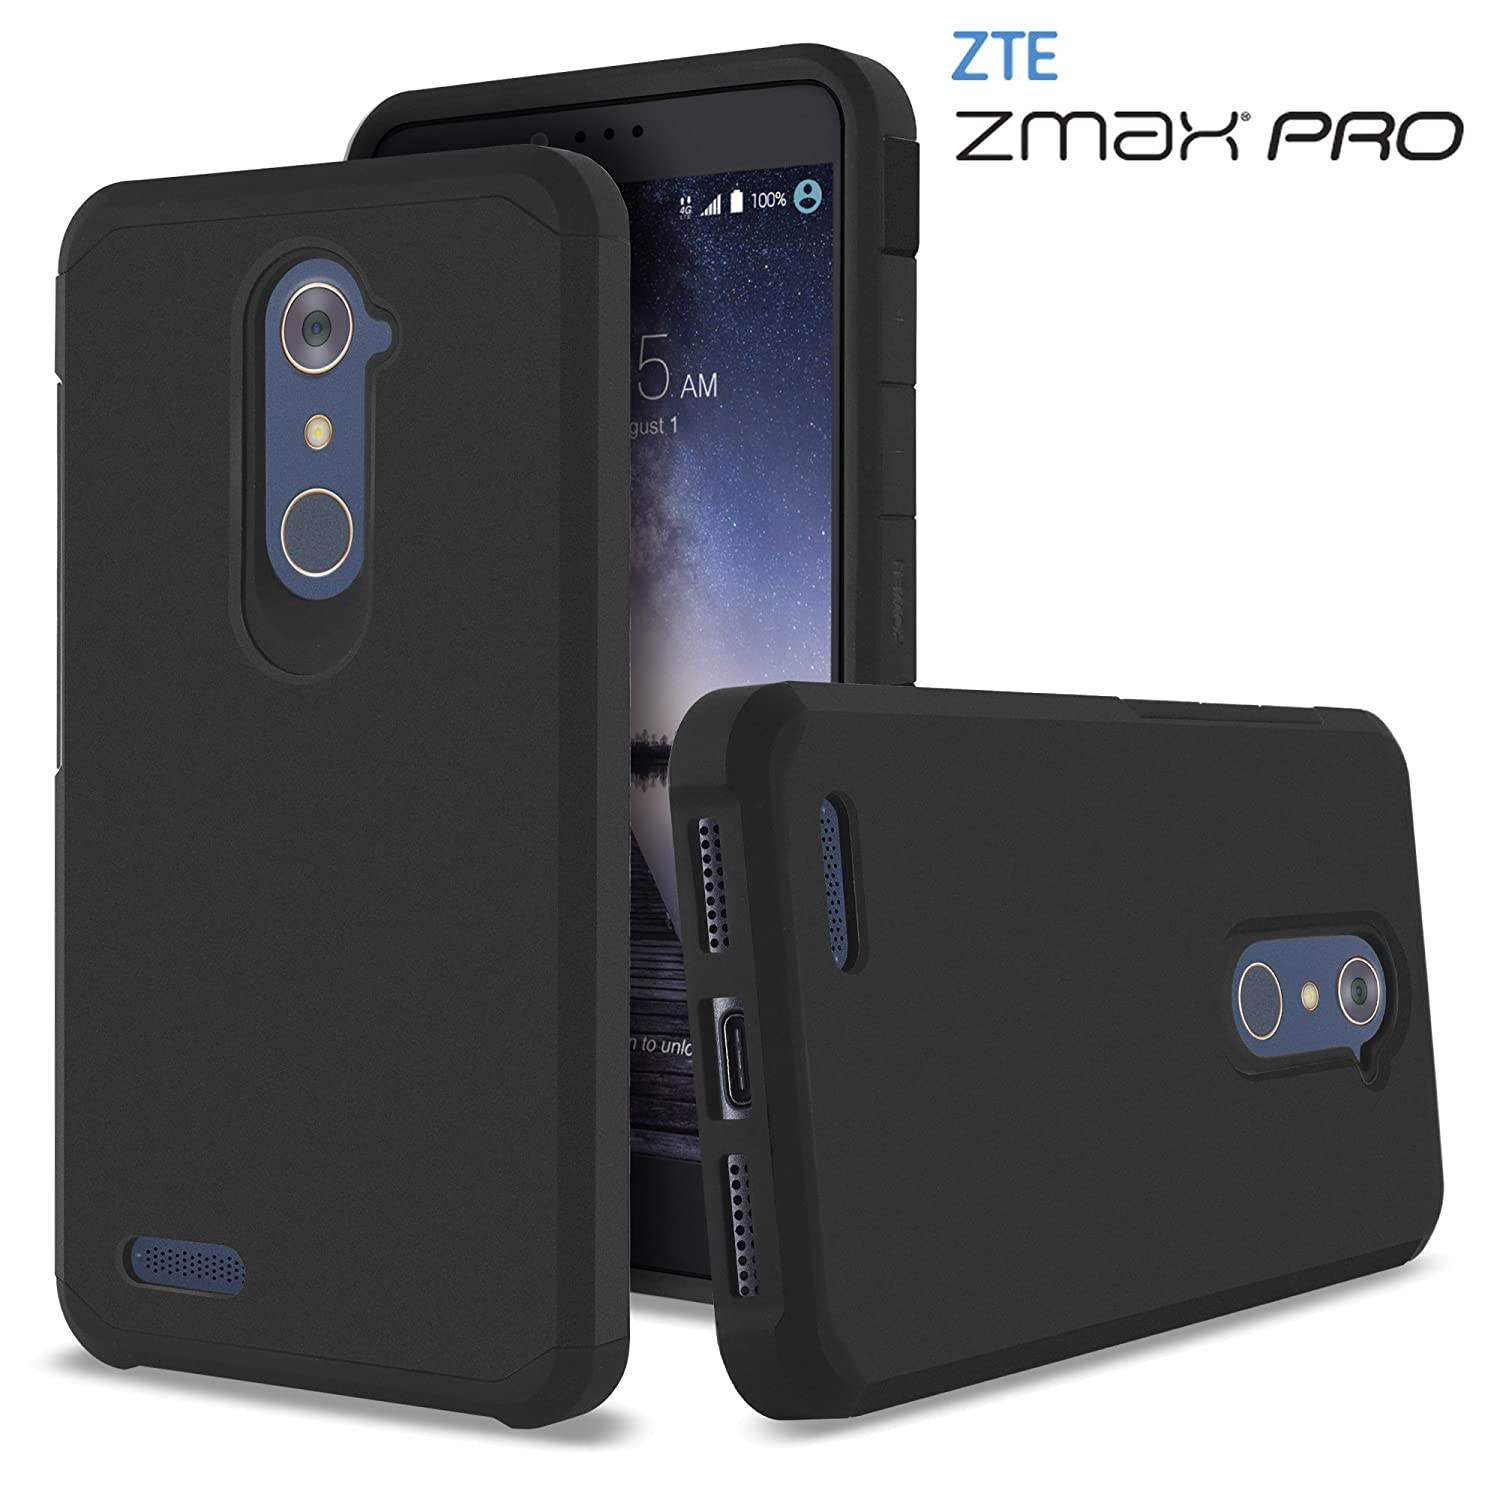 tried zte zmax pro case best buy studied their design